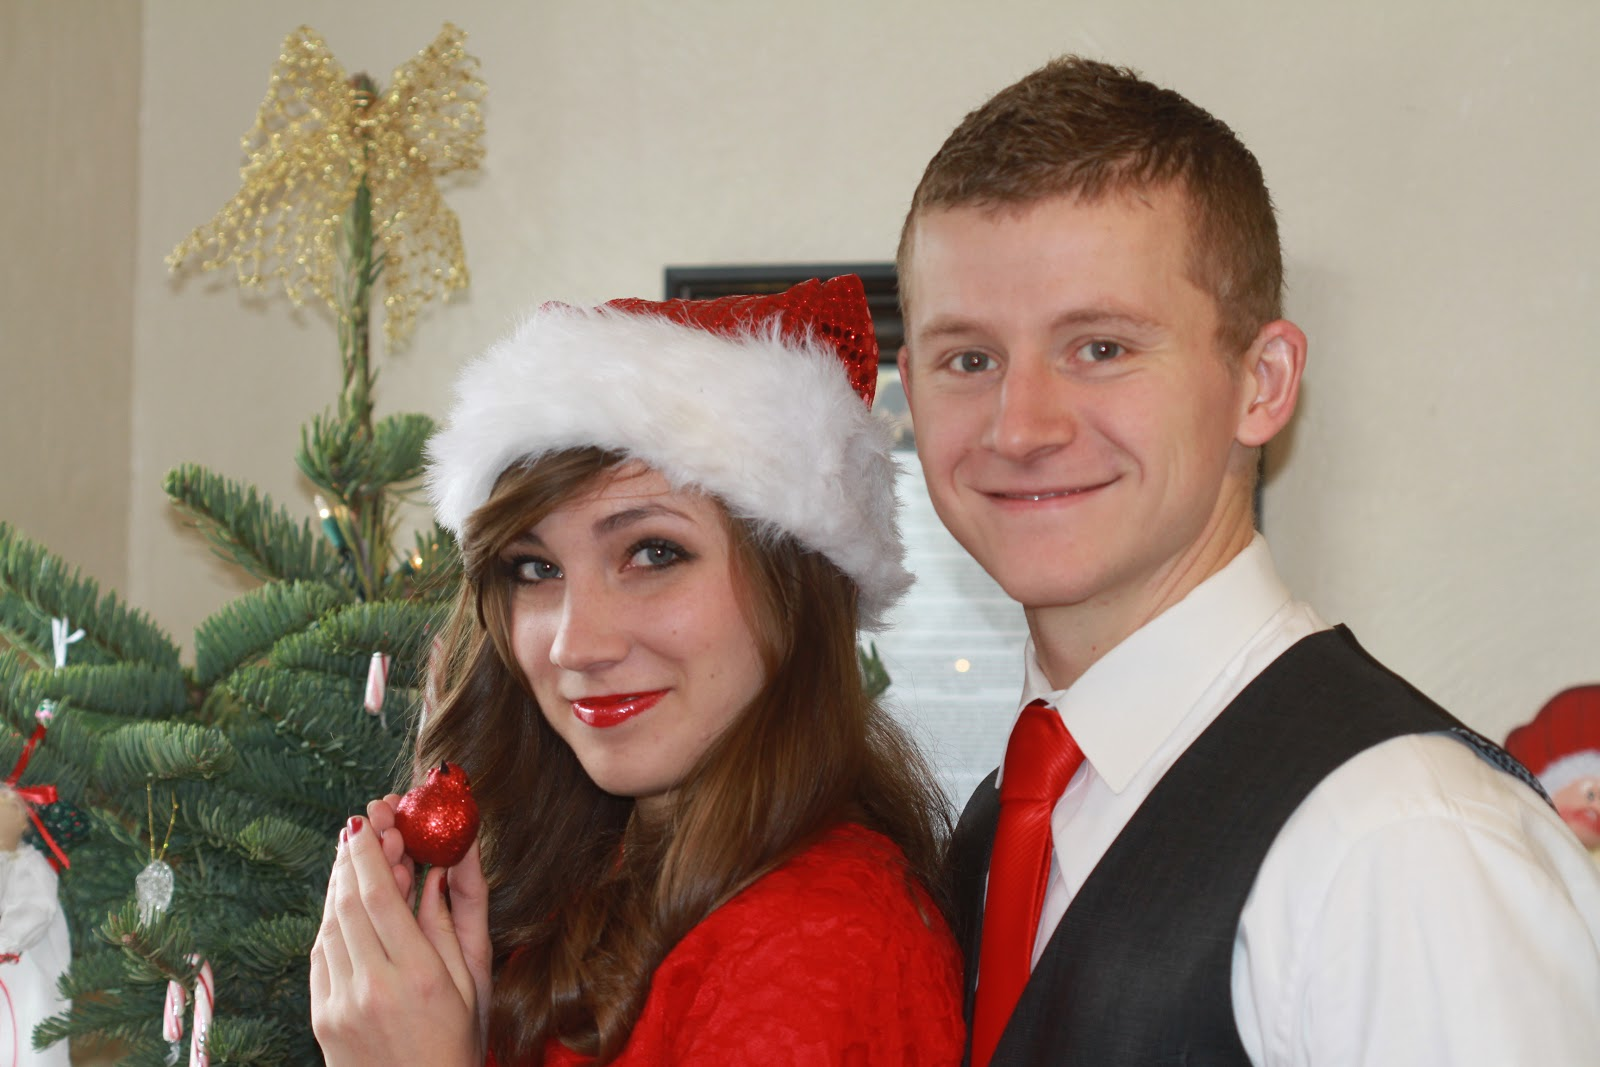 Steve and Jess: Merry Christmas